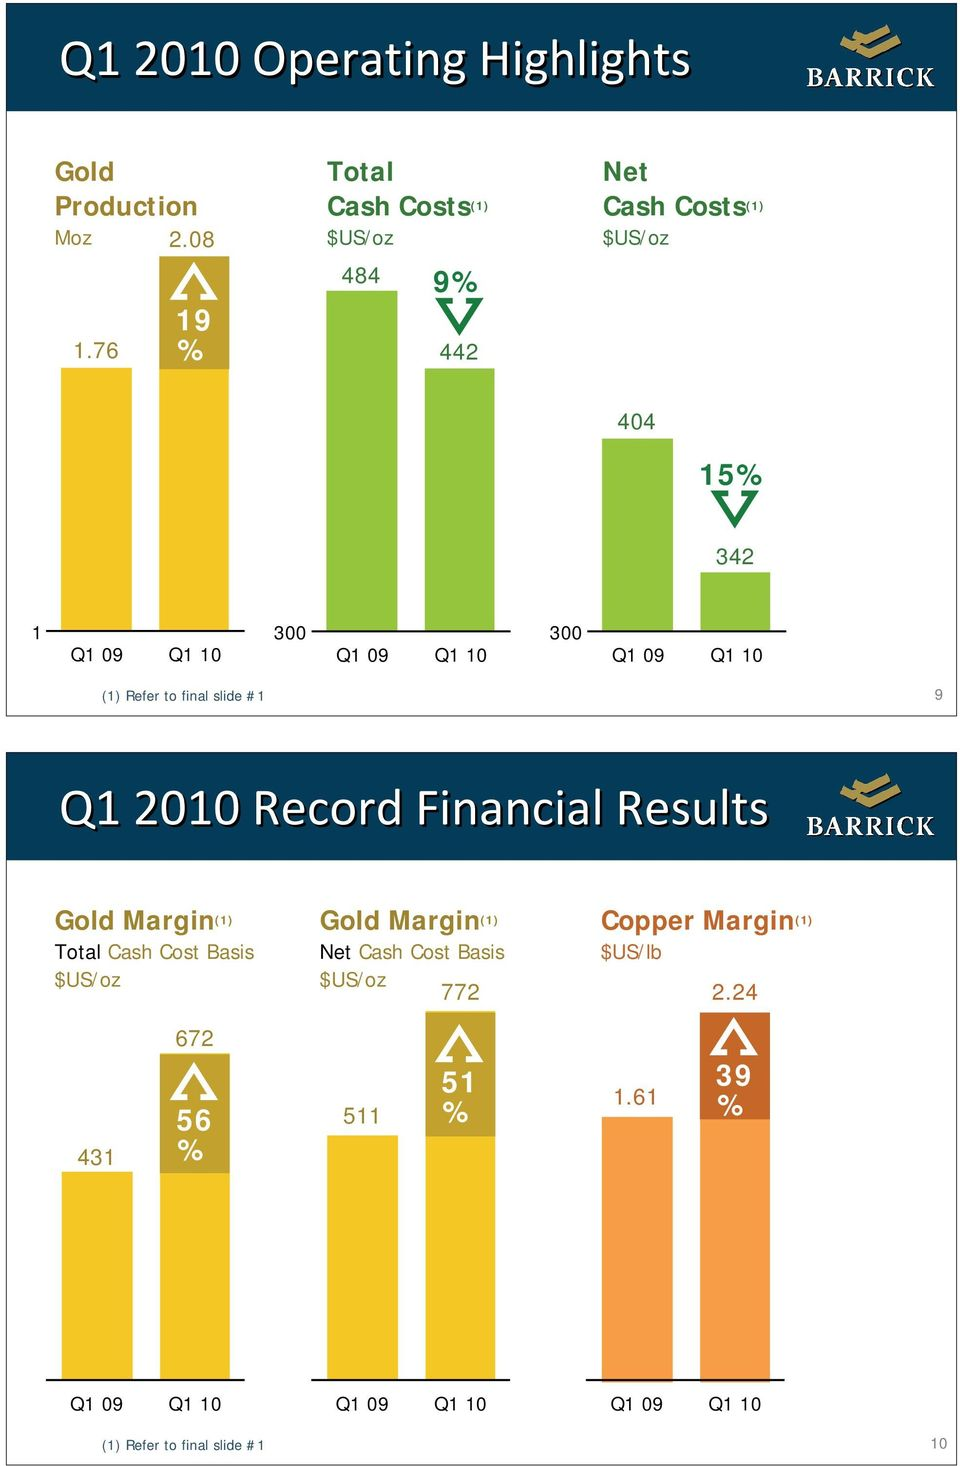 10 300 07 08 Q1 09 Q1 10 (1) Refer to final slide #1 9 Q1 2010 Record Financial Results Gold Margin (1) Total Cash Cost Basis $US/oz